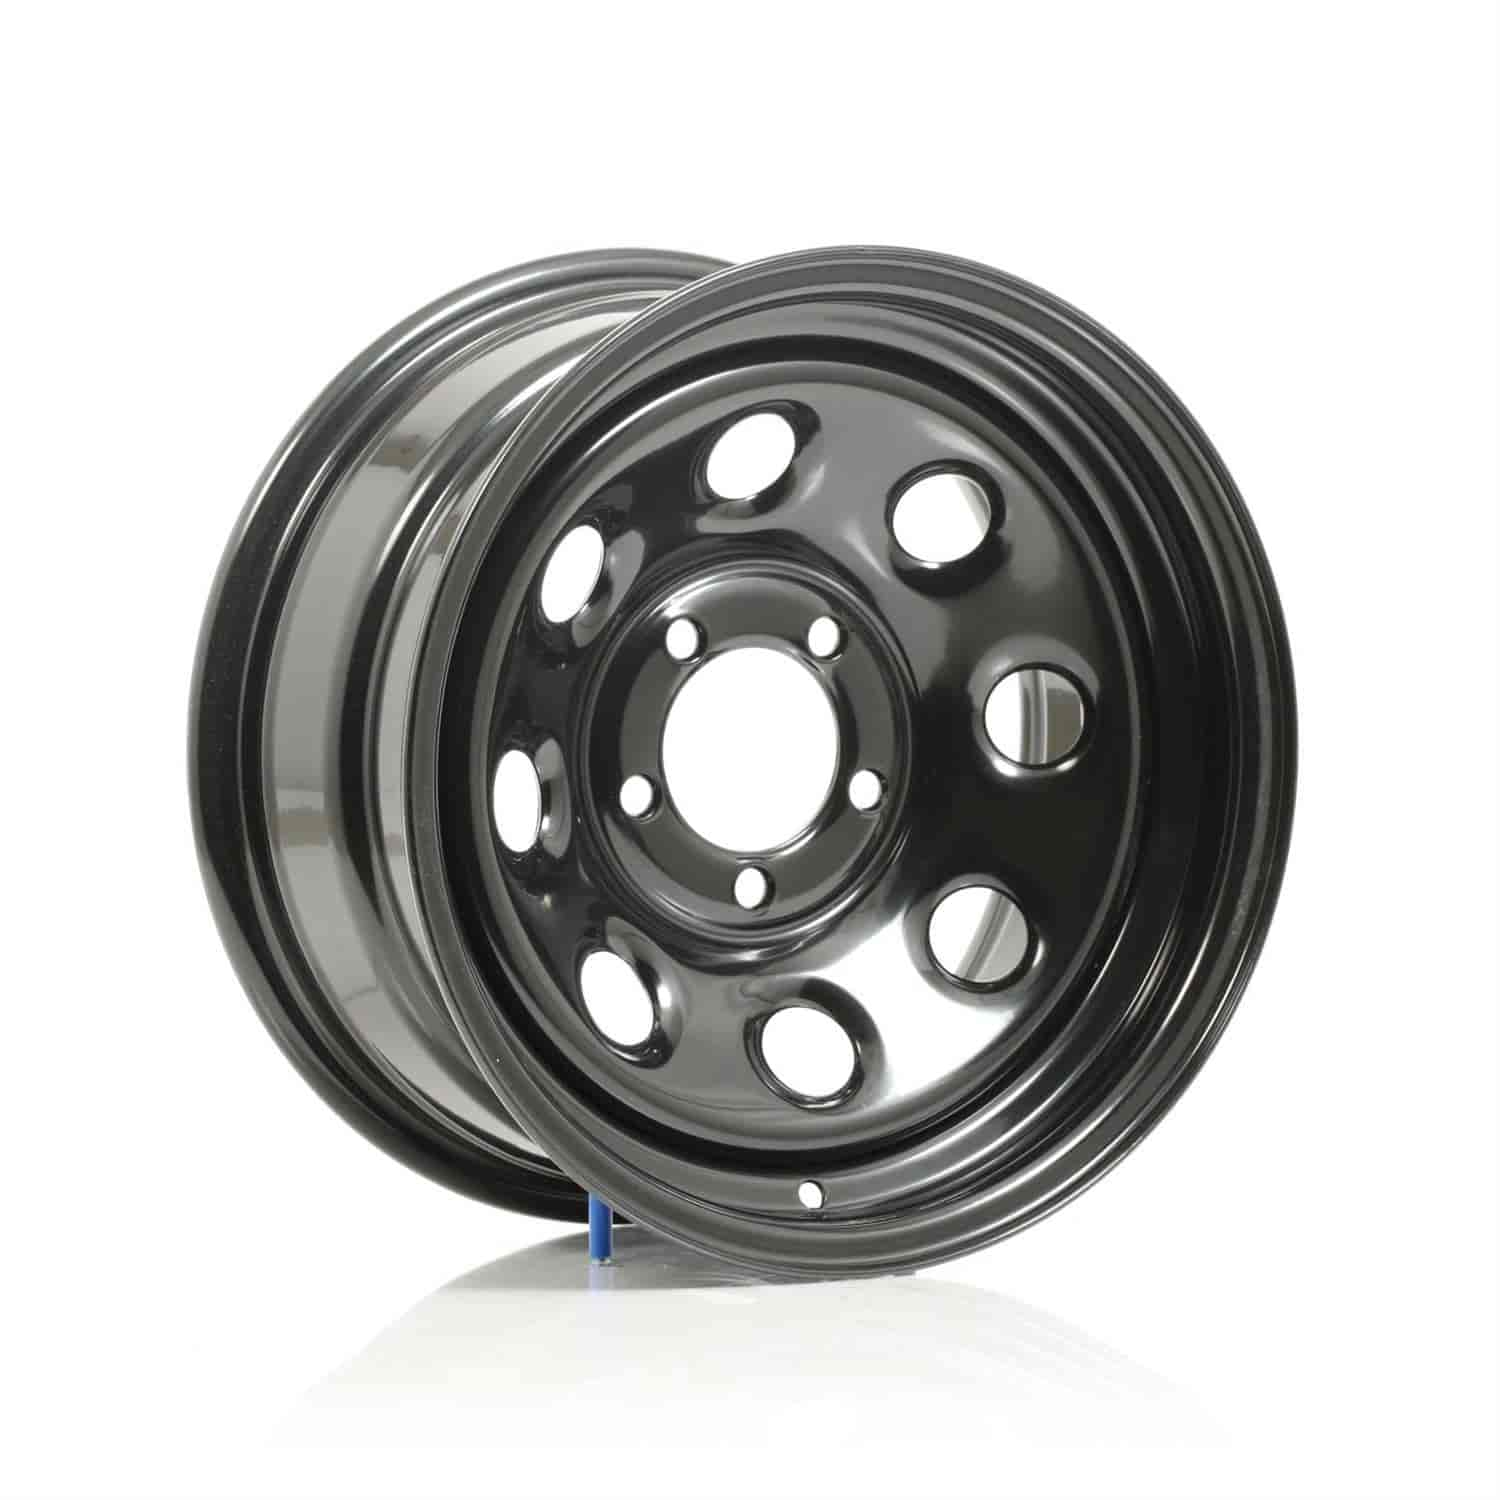 Cragar #3975855 - Cragar Black Soft 8 Wheels